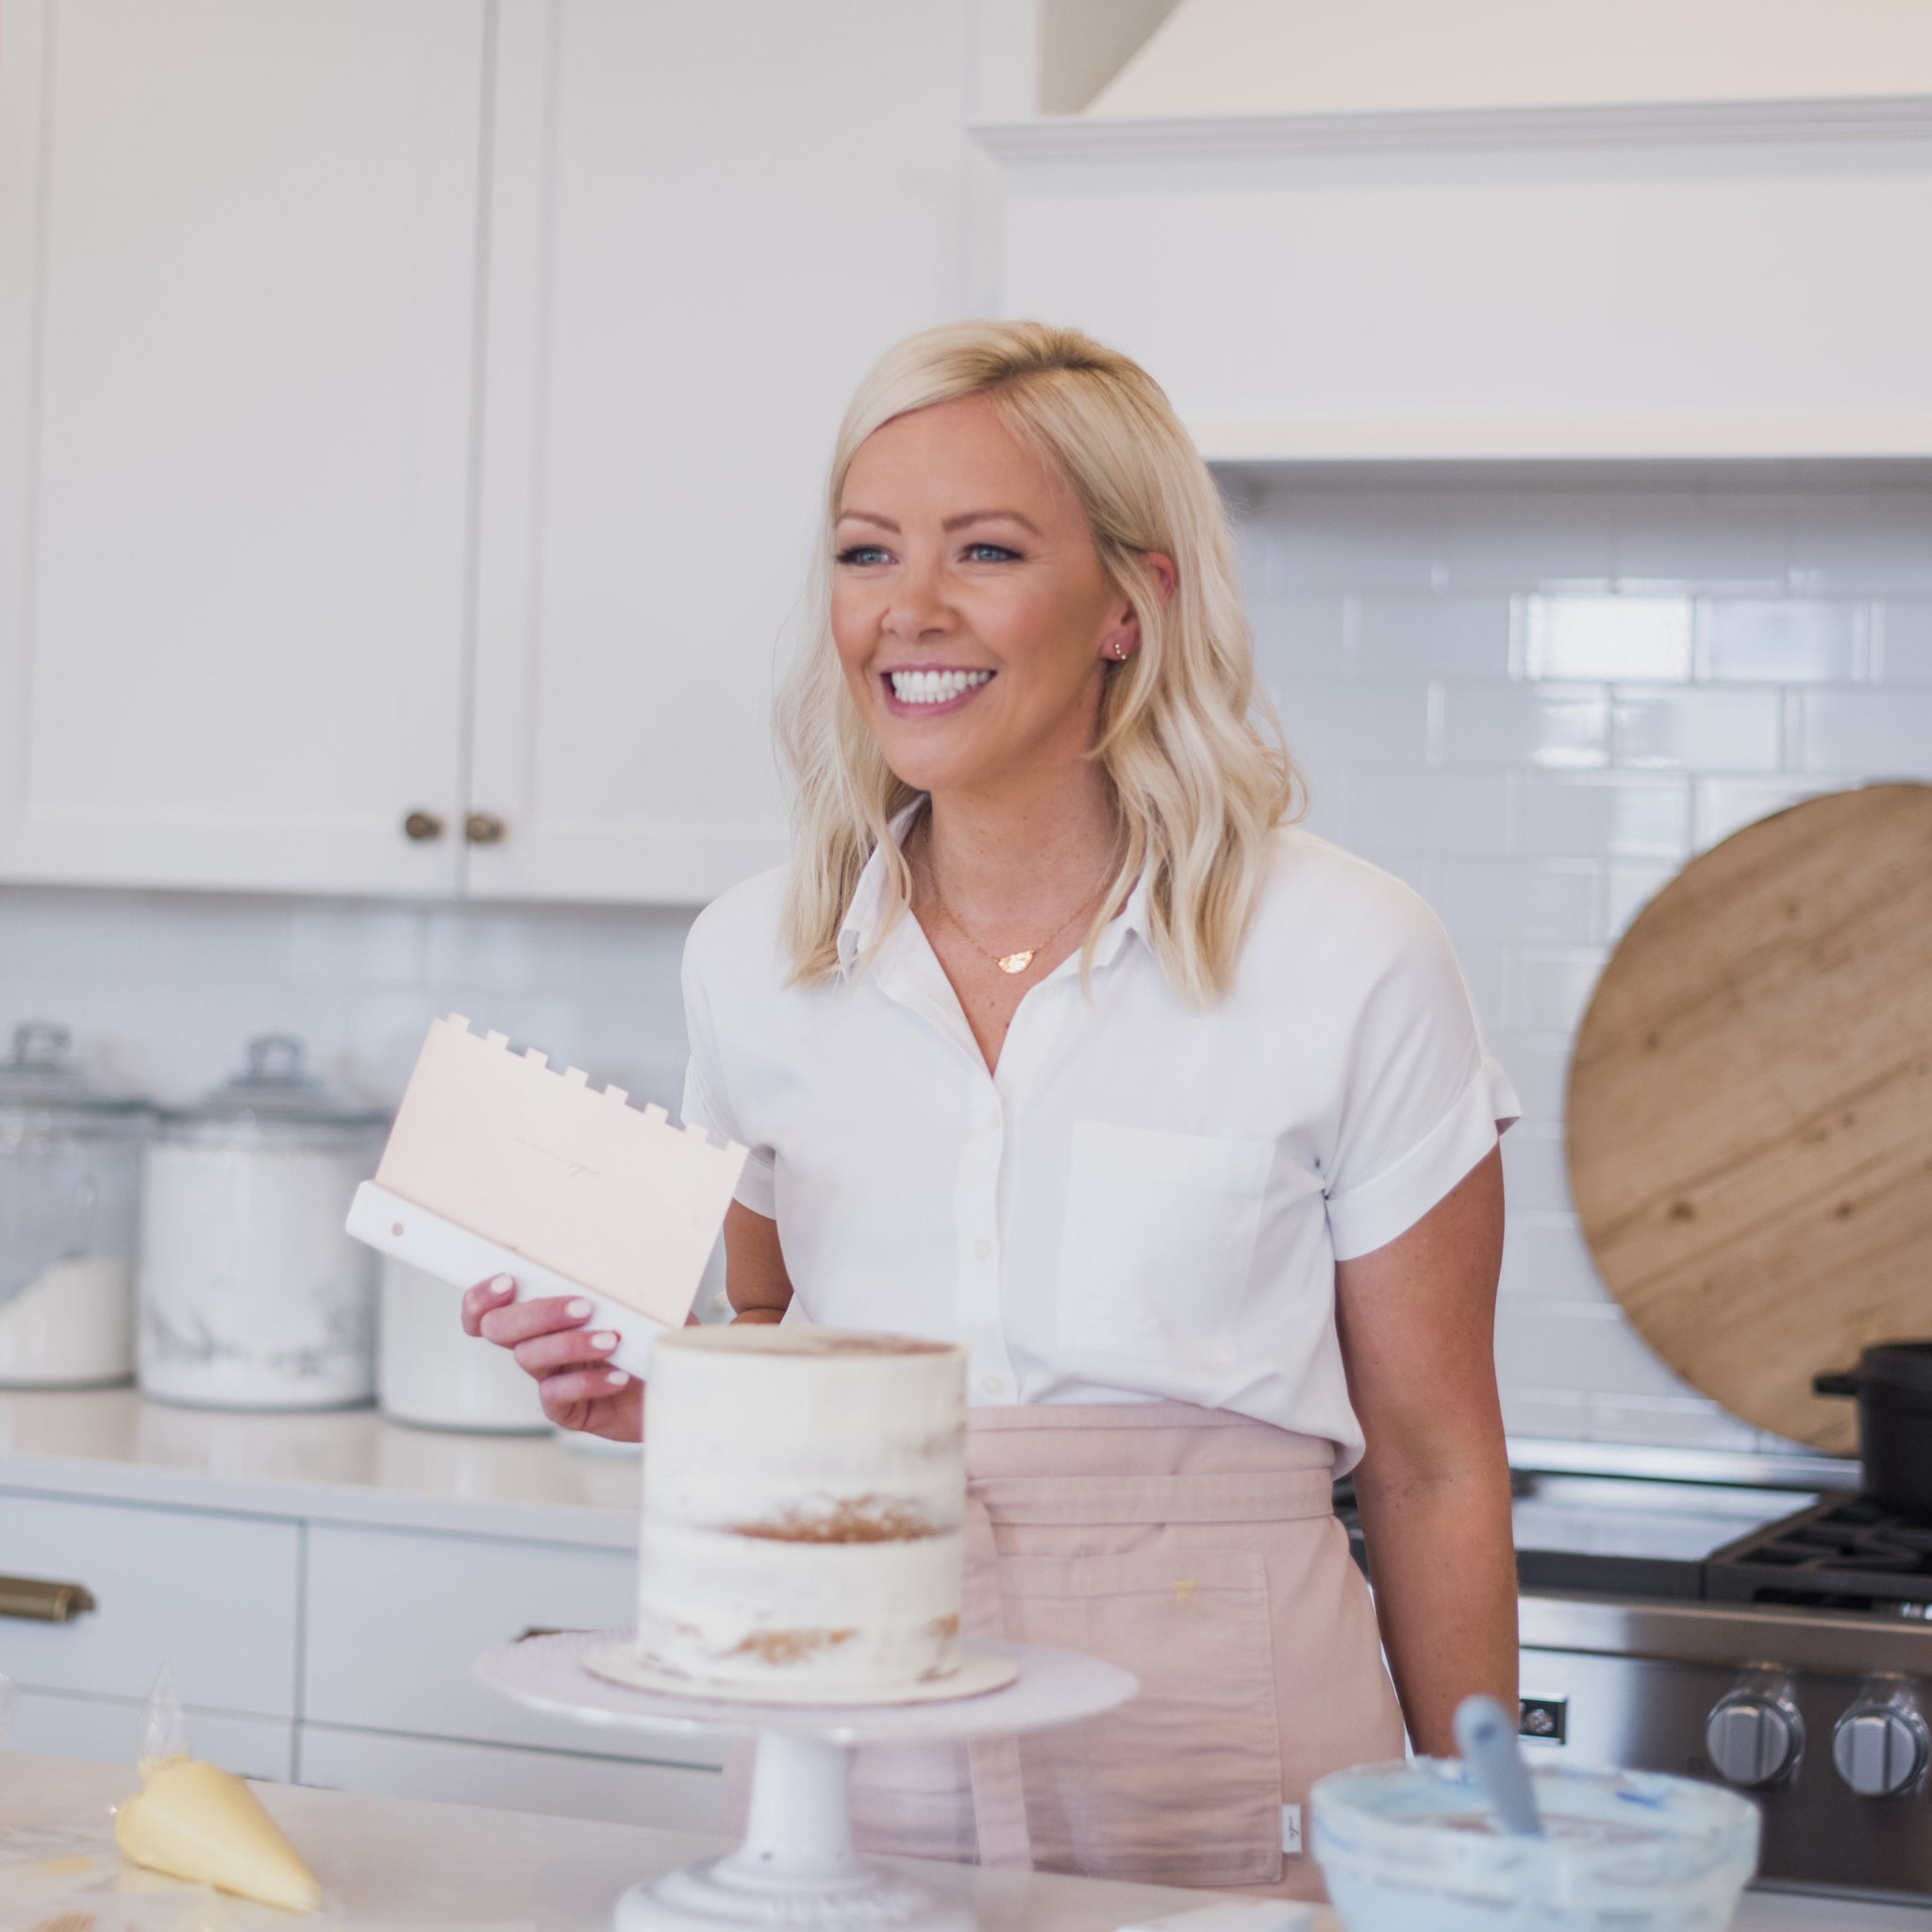 Courtney wearing a white shirt and pink apron with a cake in her kitchen using a scraper from the Texture Set which can be purchased on the website